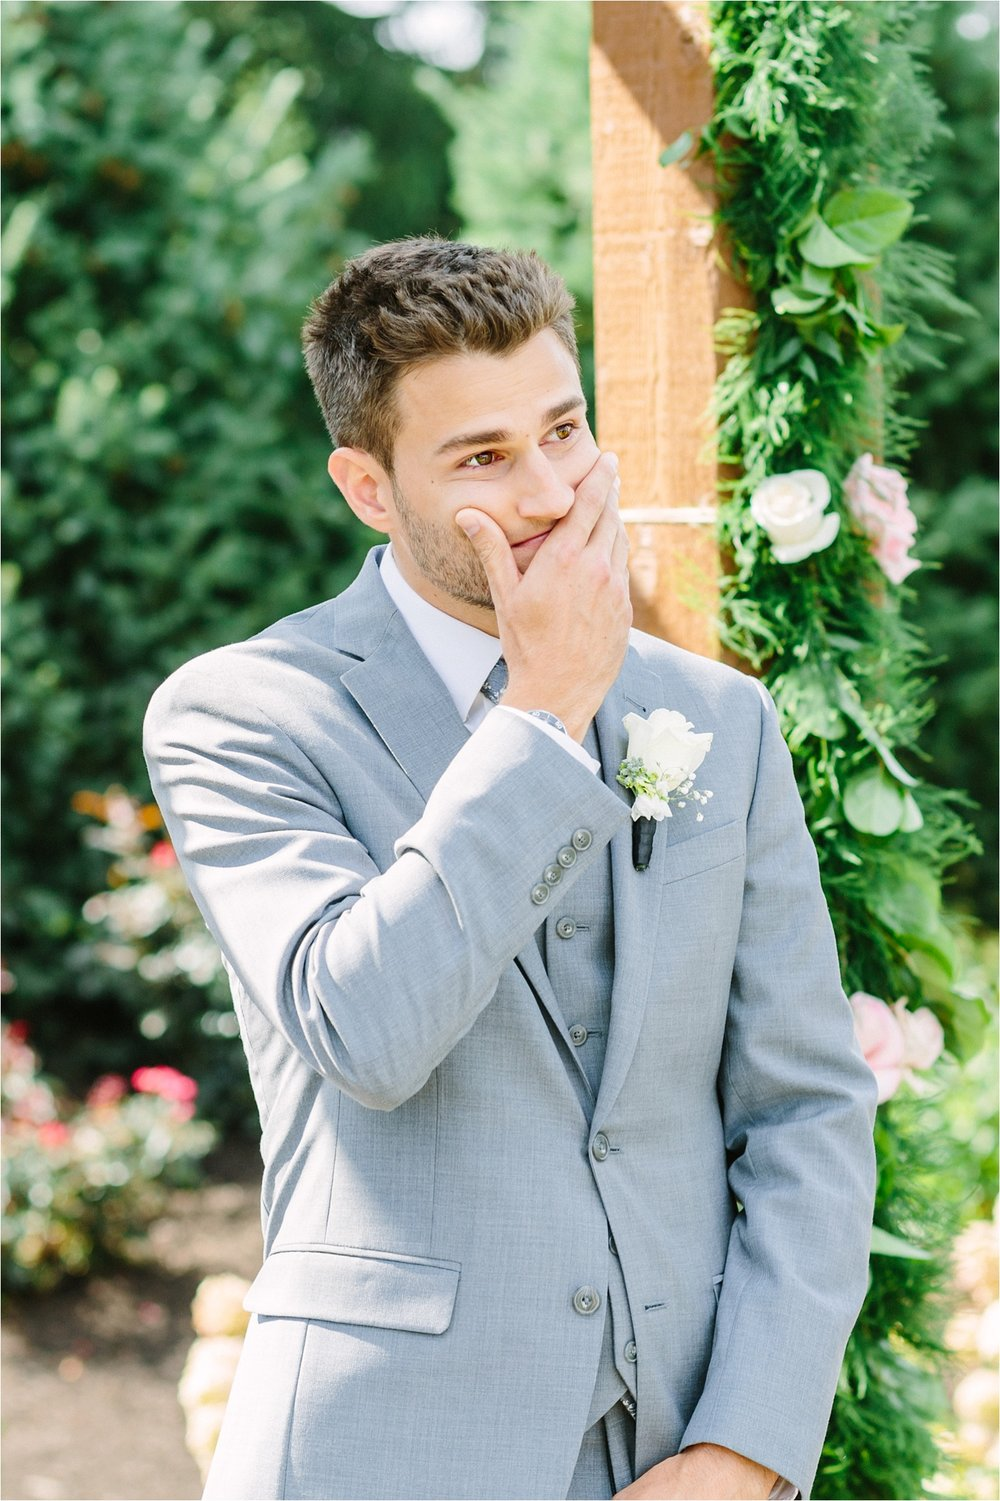 Alex had the best and sweetest reaction to seeing his bride walk down the aisle.